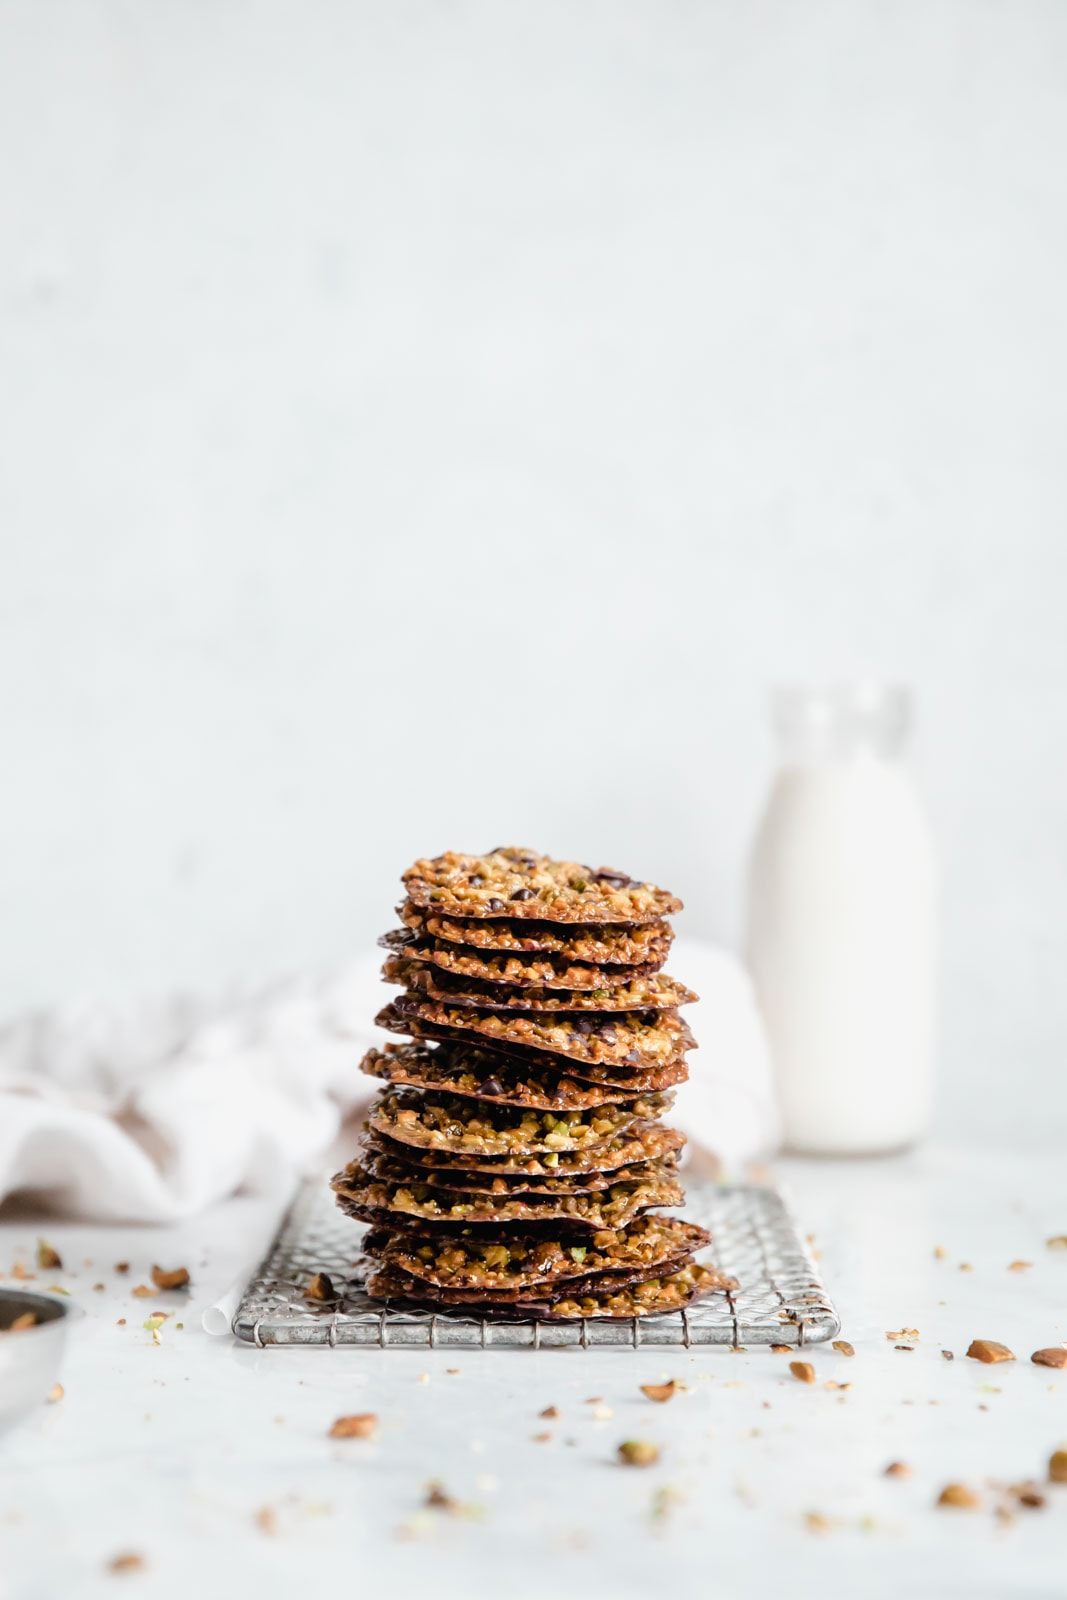 crunchy homemade lace cookies in a stack